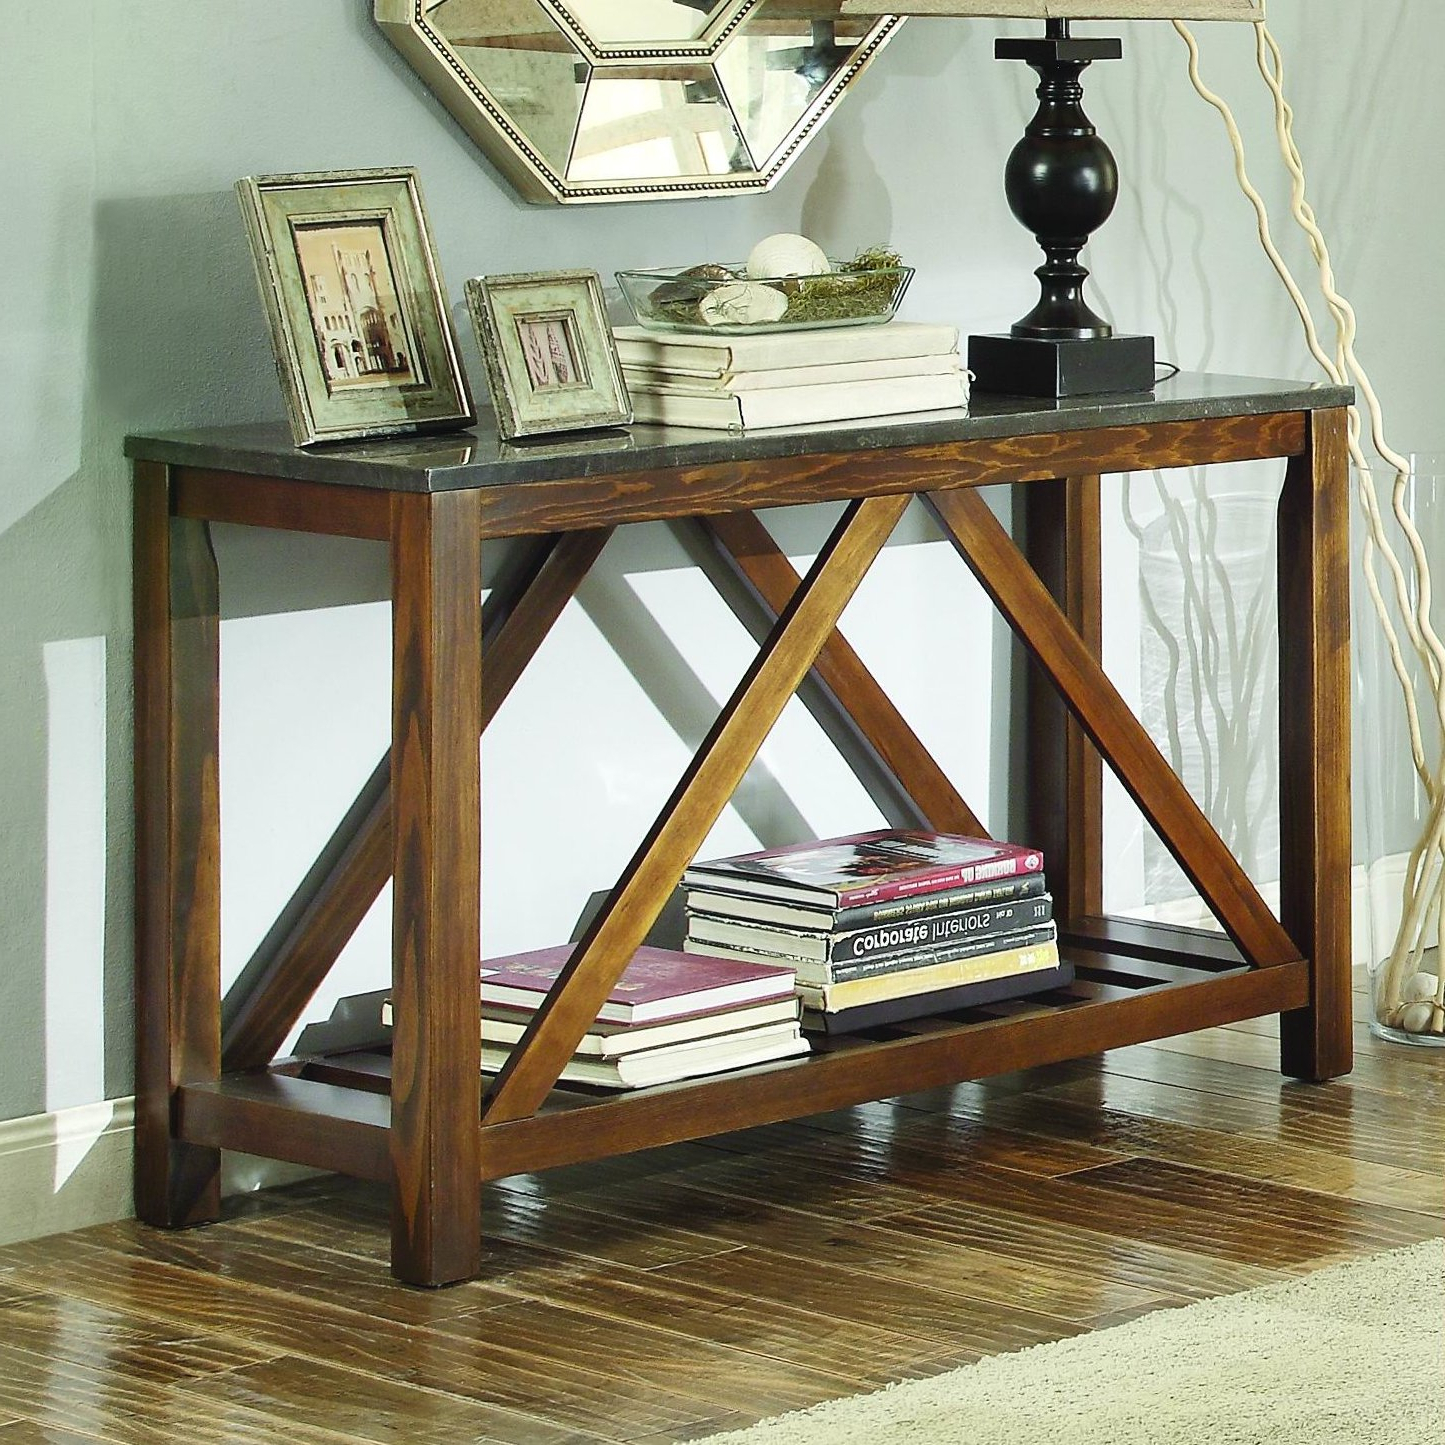 Homelegance Ashby Console Table | Wayfair Regarding Bluestone Console Tables (View 16 of 20)